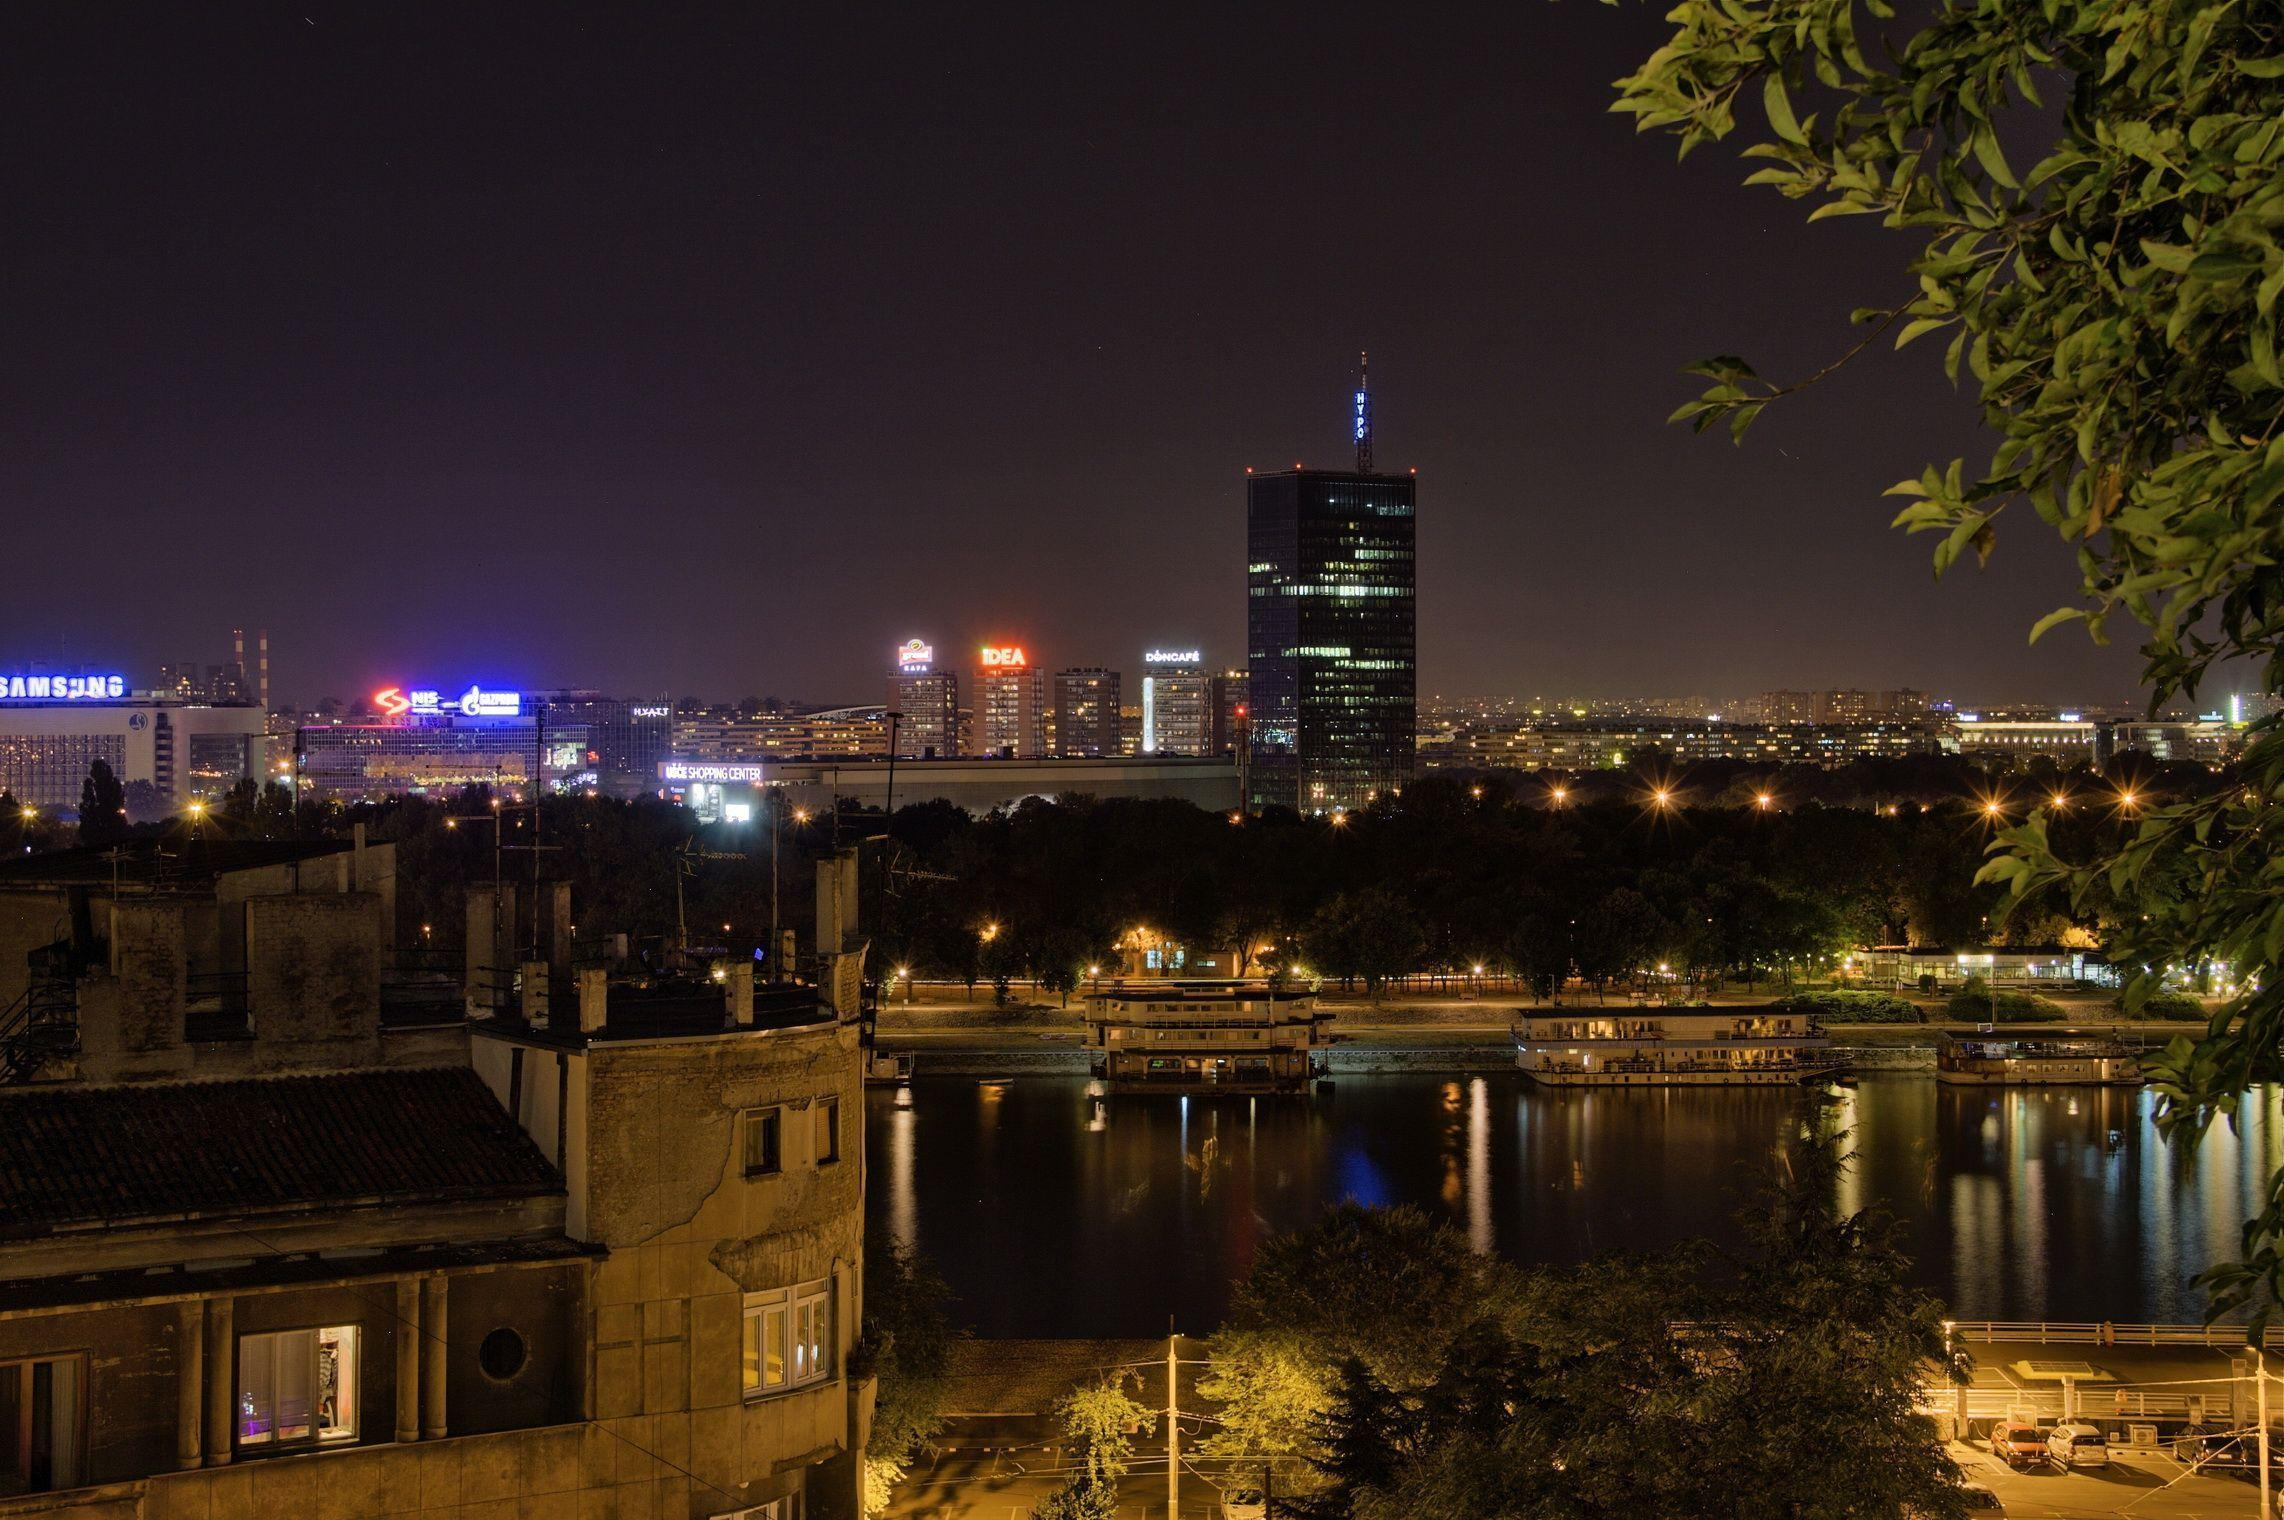 Photo Serbia Belgrade Canal night time Cities 2284x1520